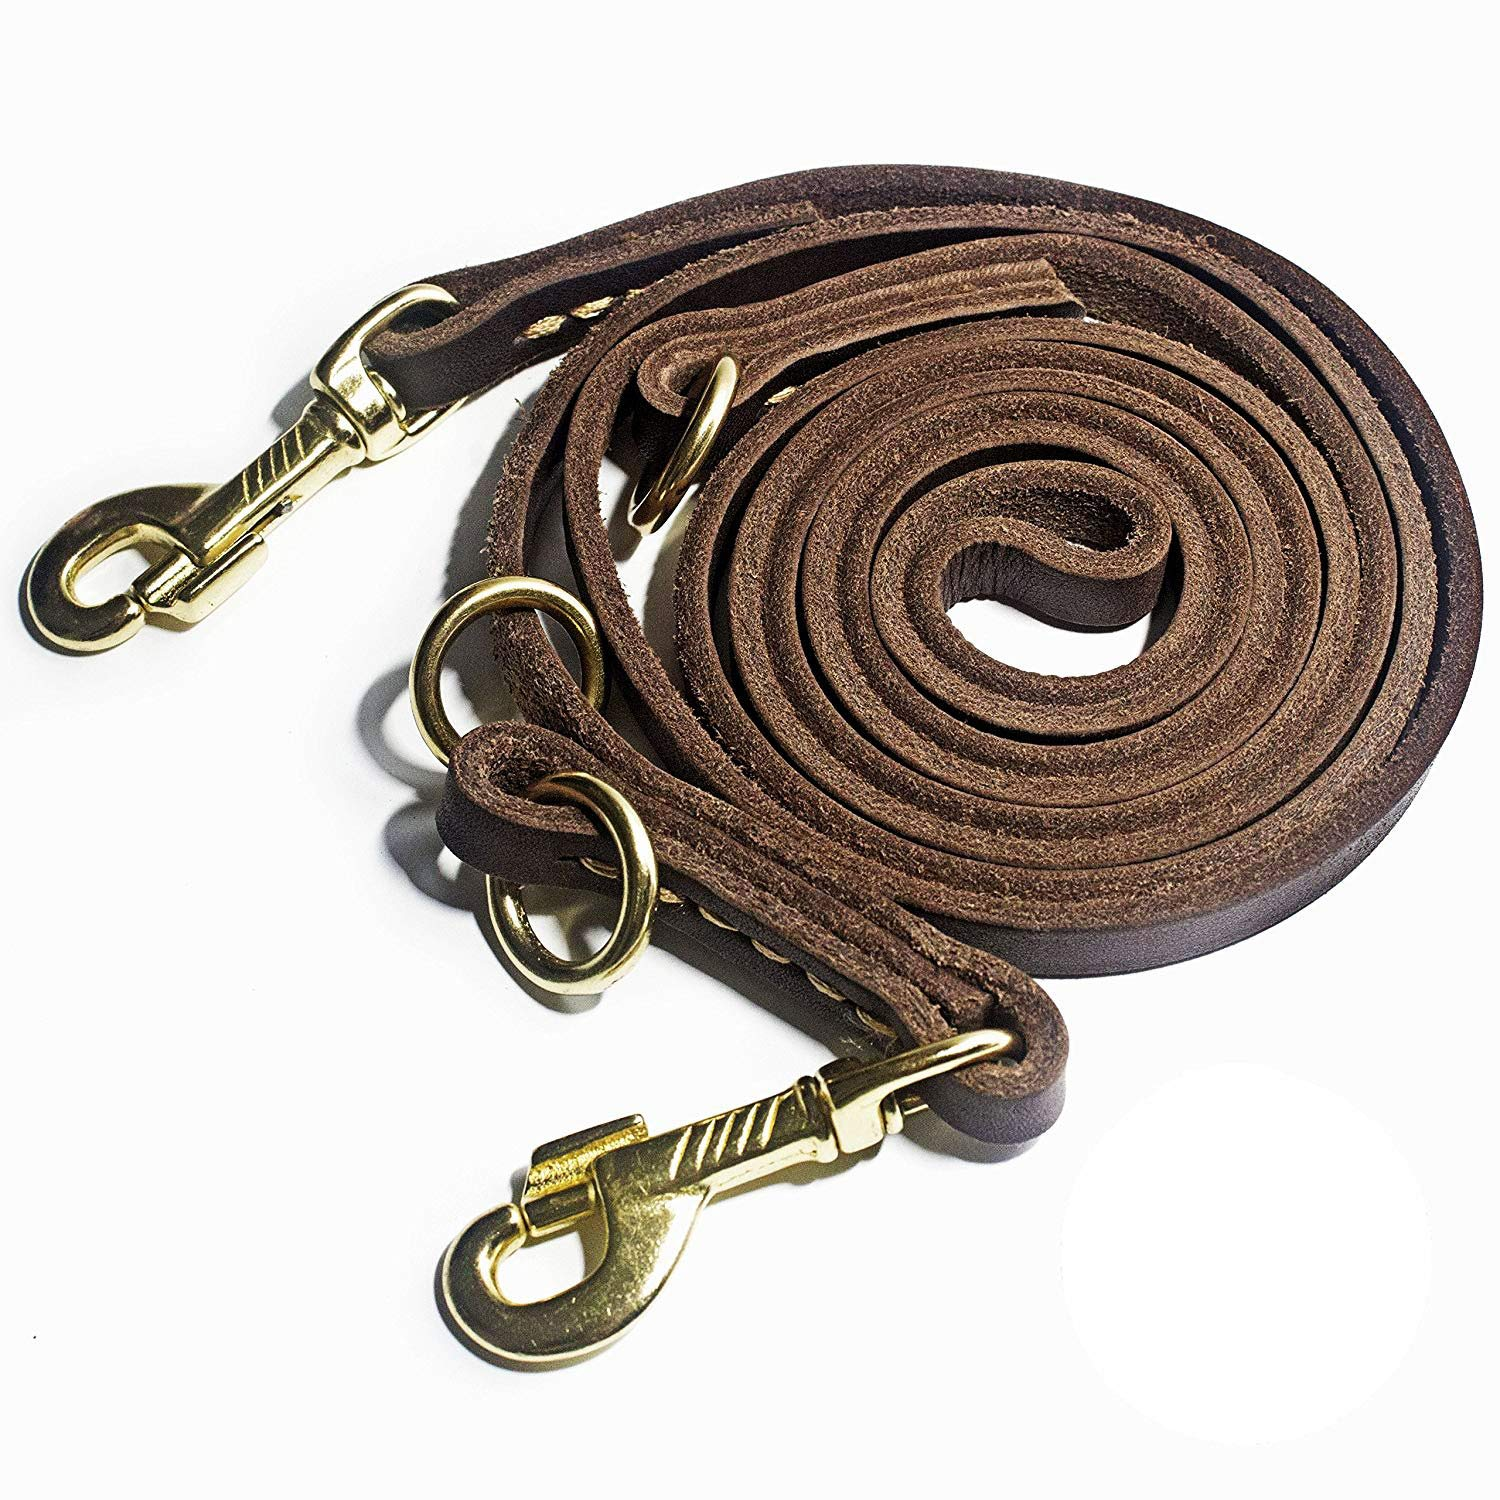 DOG CARE Hands Free Dog Leash, Multifunctional Dog Leash, 8ft Brown Leather Leash for Medium & Small Dogs